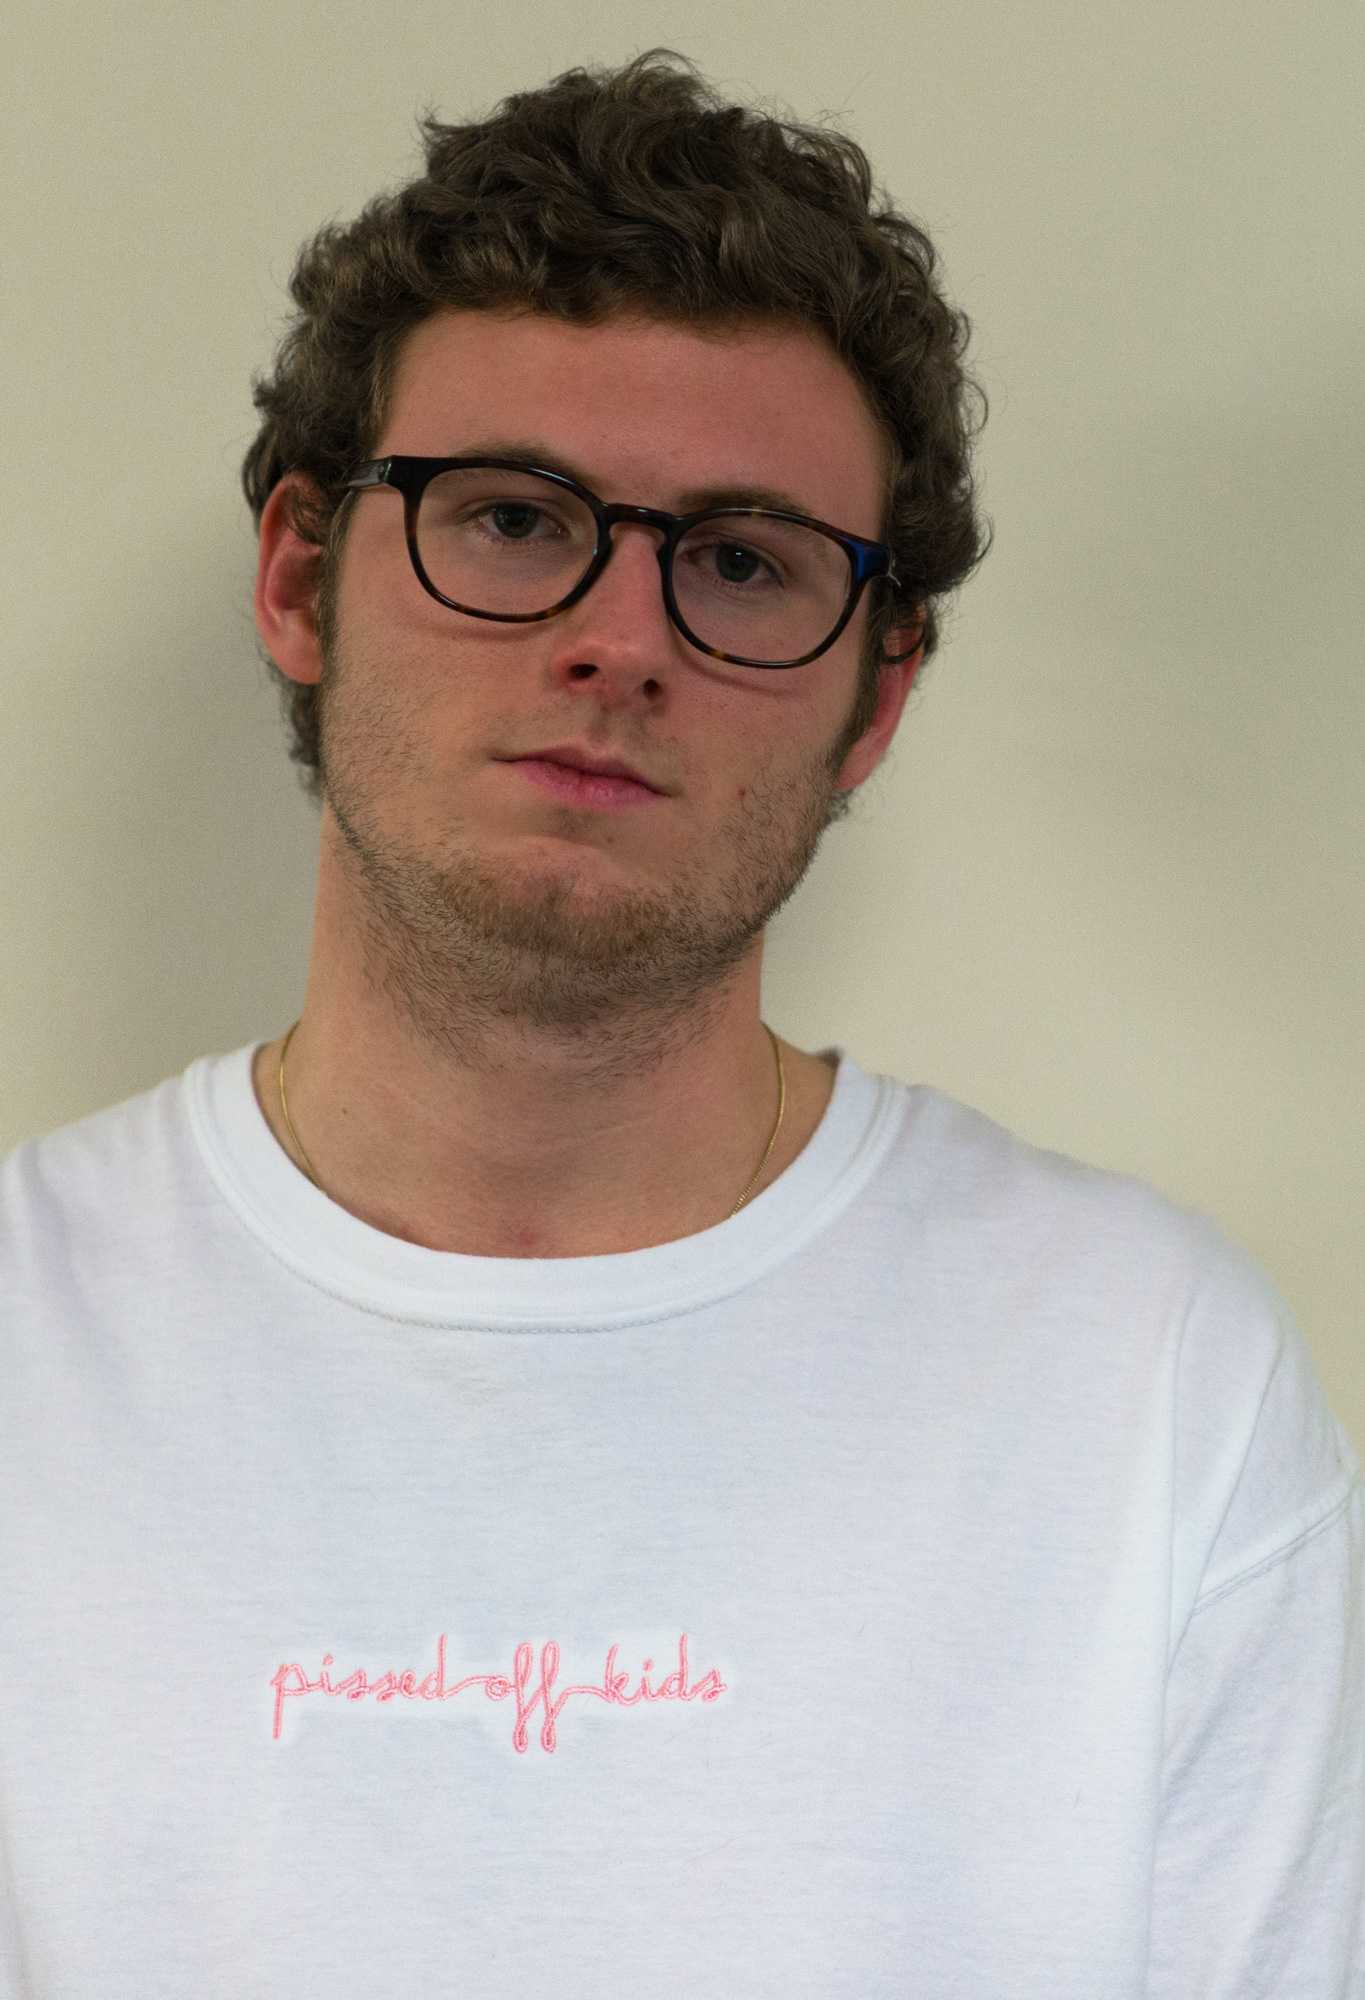 Senior communication/journalism major Hunter Greer wears a white Pissed Off Kids t-shirt. Pissed Off Kids t-shirts come in white, pink, blue and black, all with pink stitching.